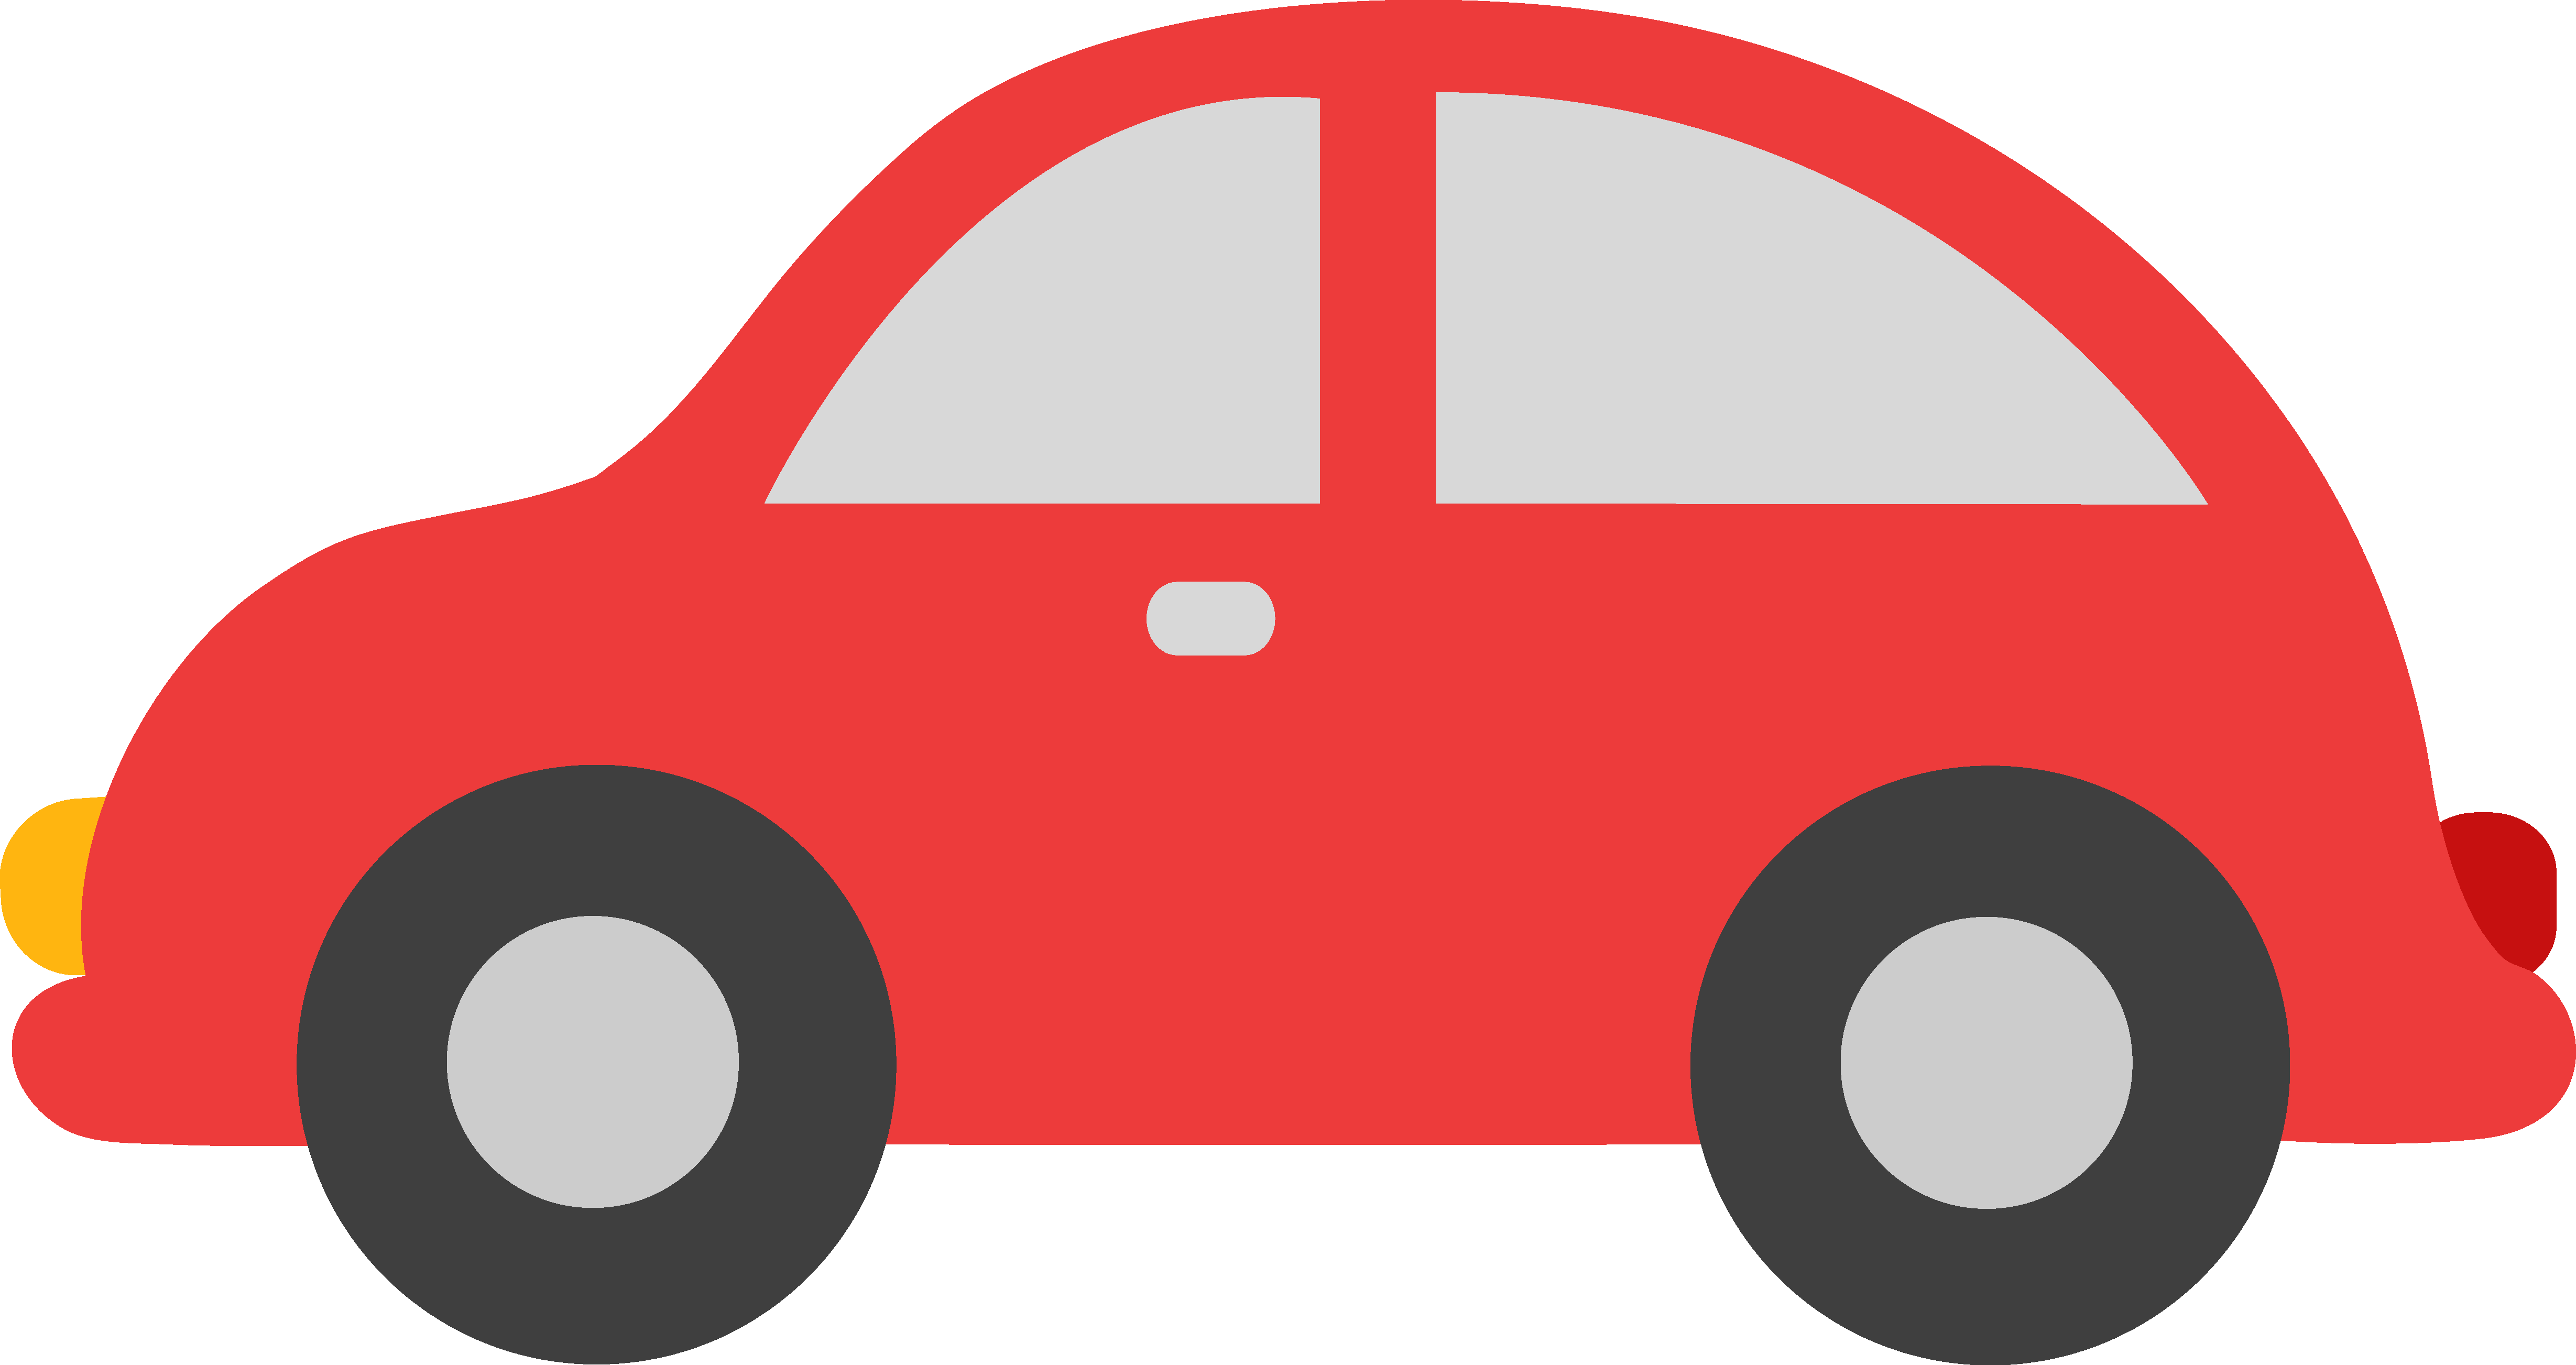 png royalty free download Red Toy Car Clipart